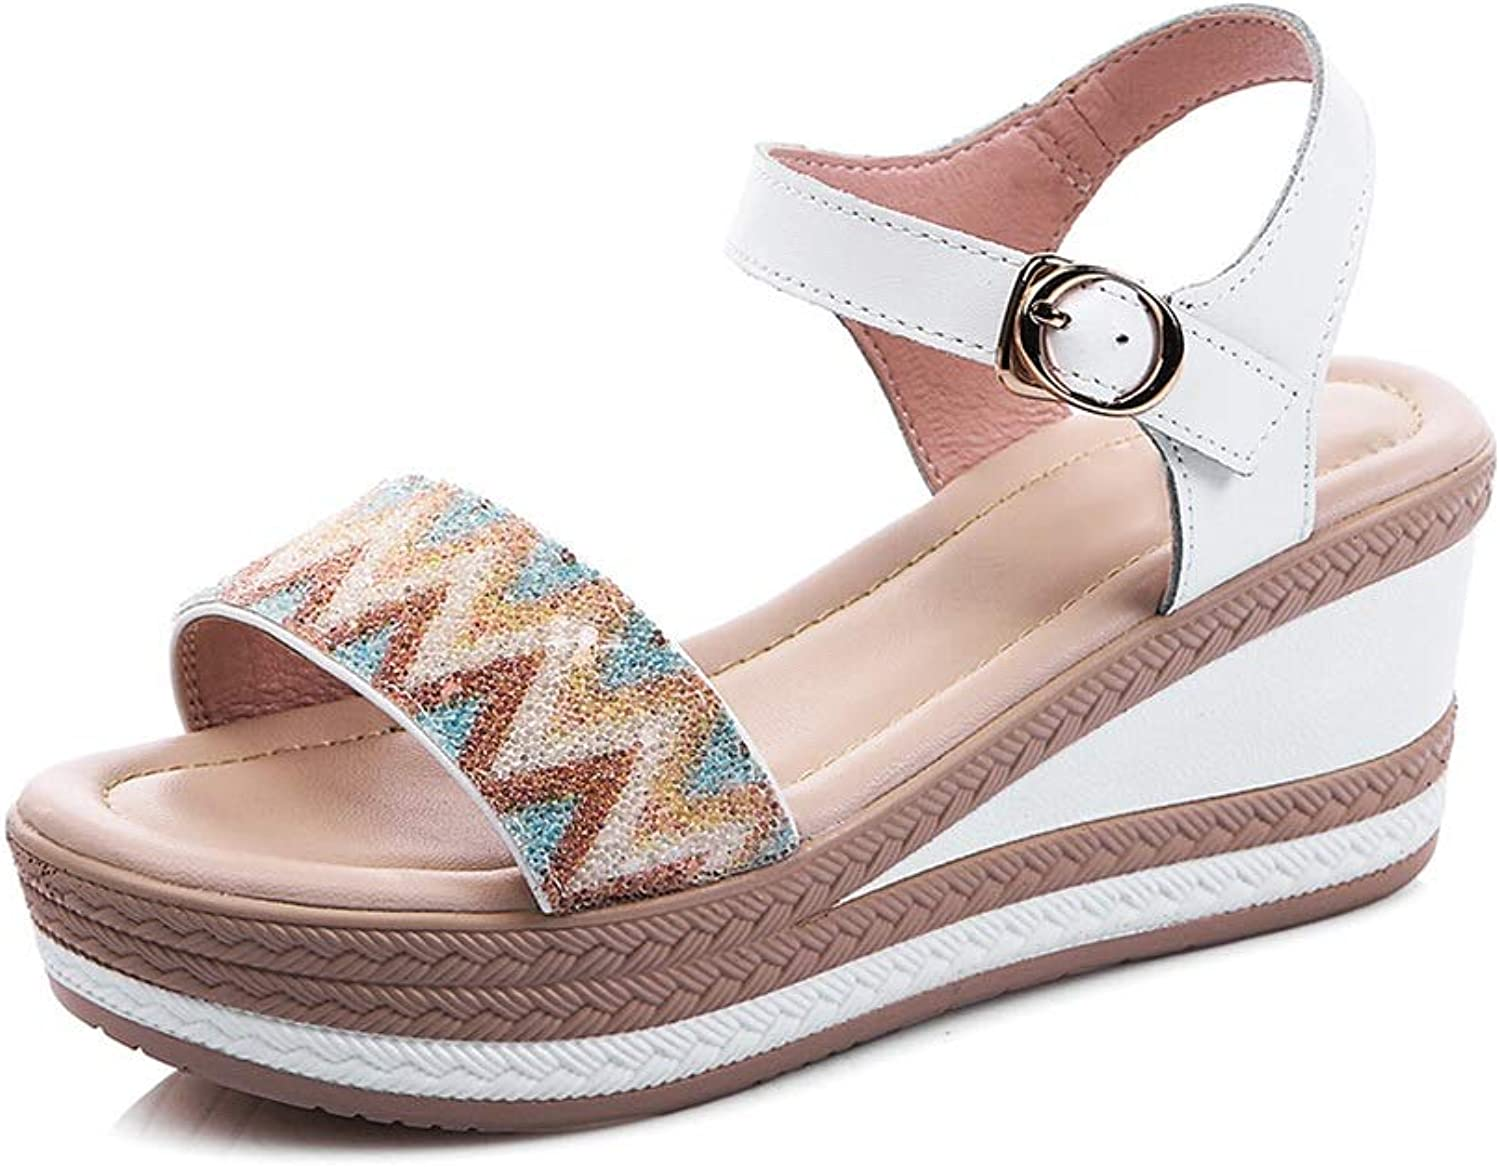 Women's Sandal Wedge Heel, Platform Comfortable High Heels (color   White, Size   7 US)